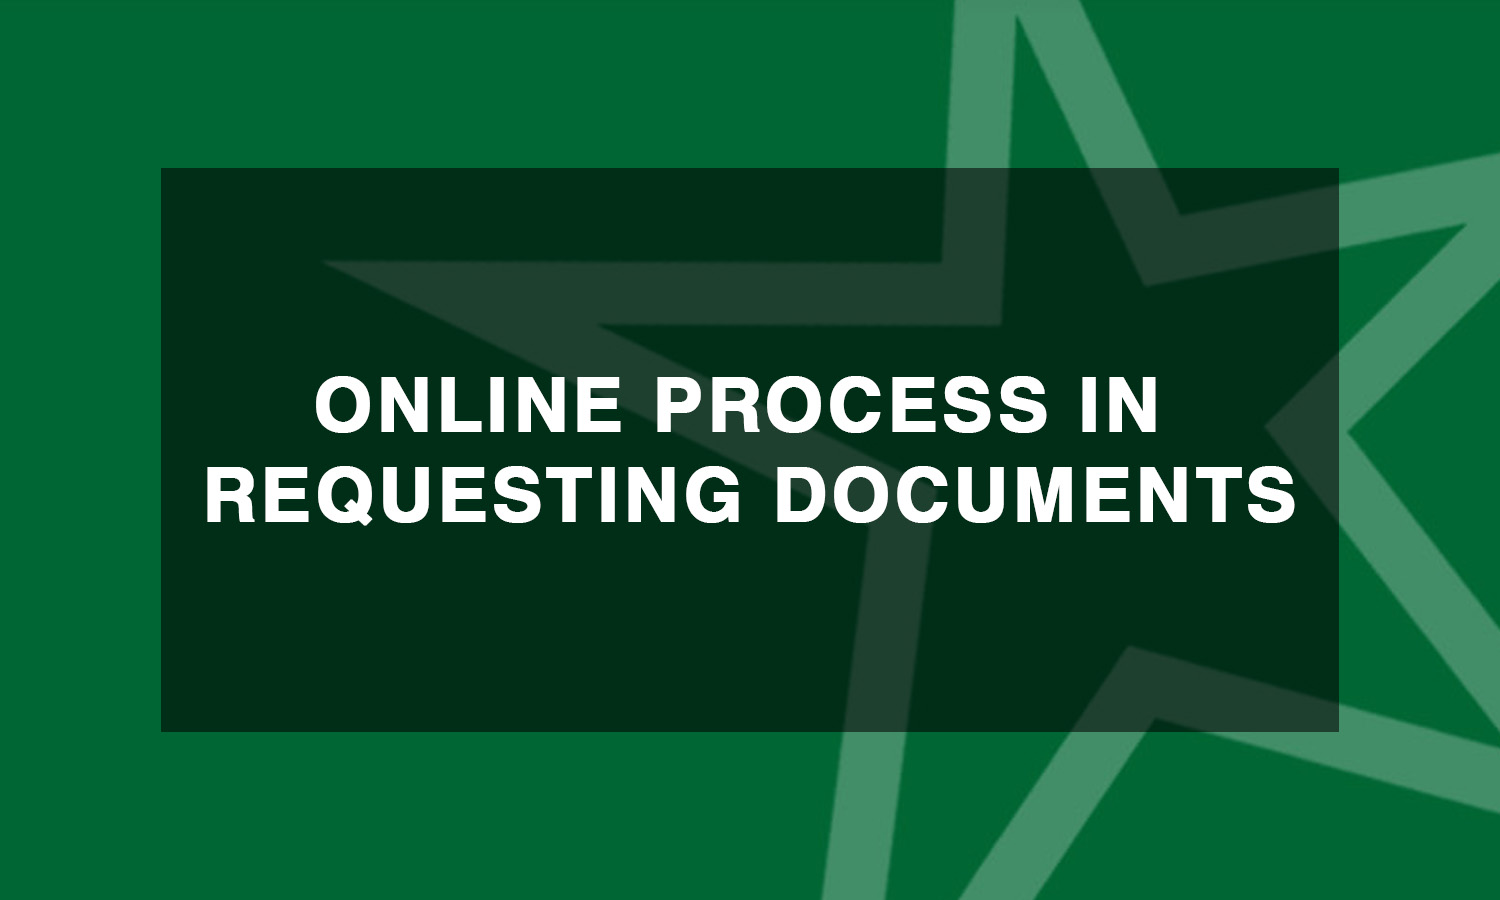 Online-Process-in-Requesting-Documents.jpg